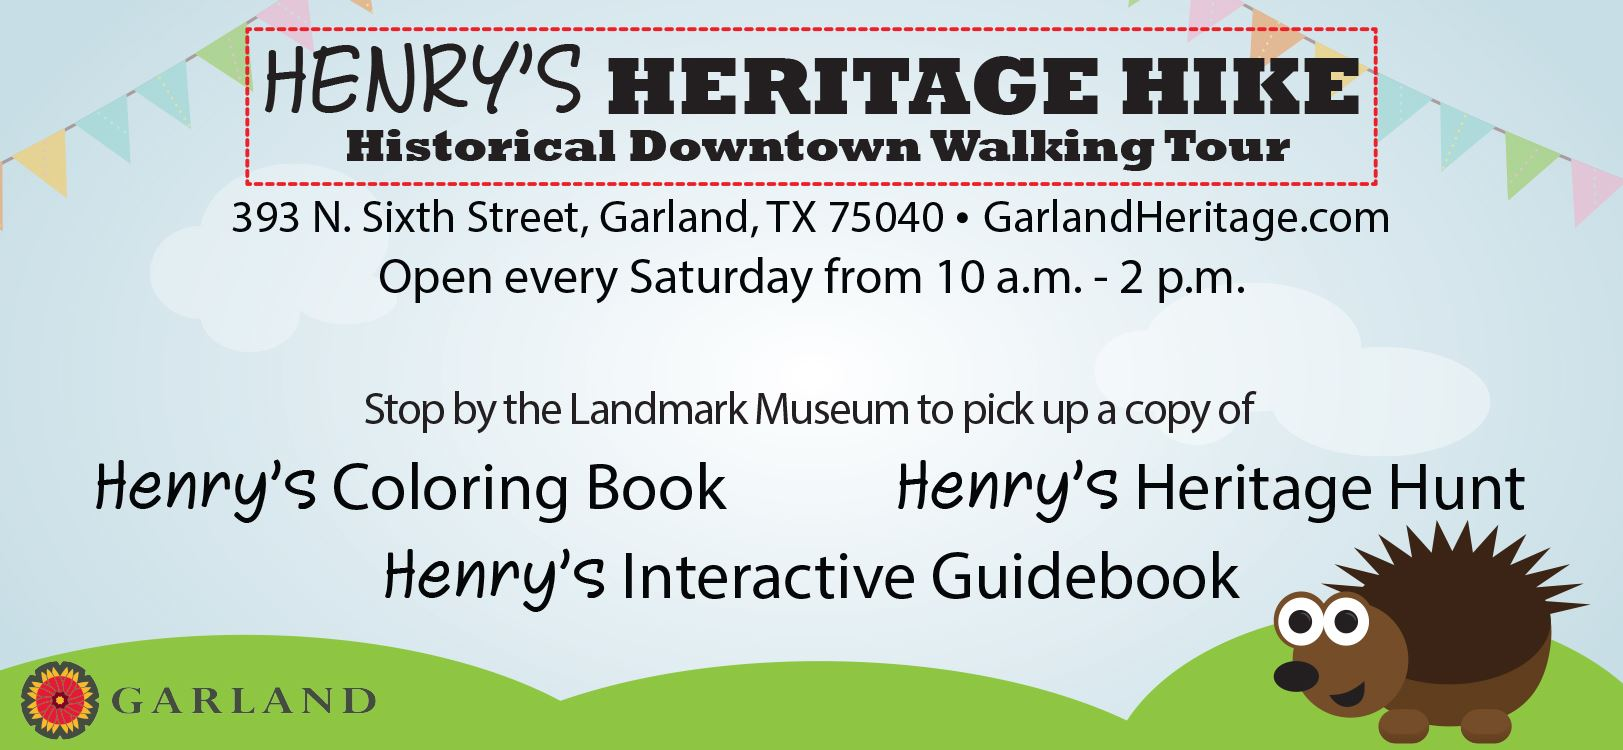 Henrys Heritage Hike Historic Downtown Walking Tour Information